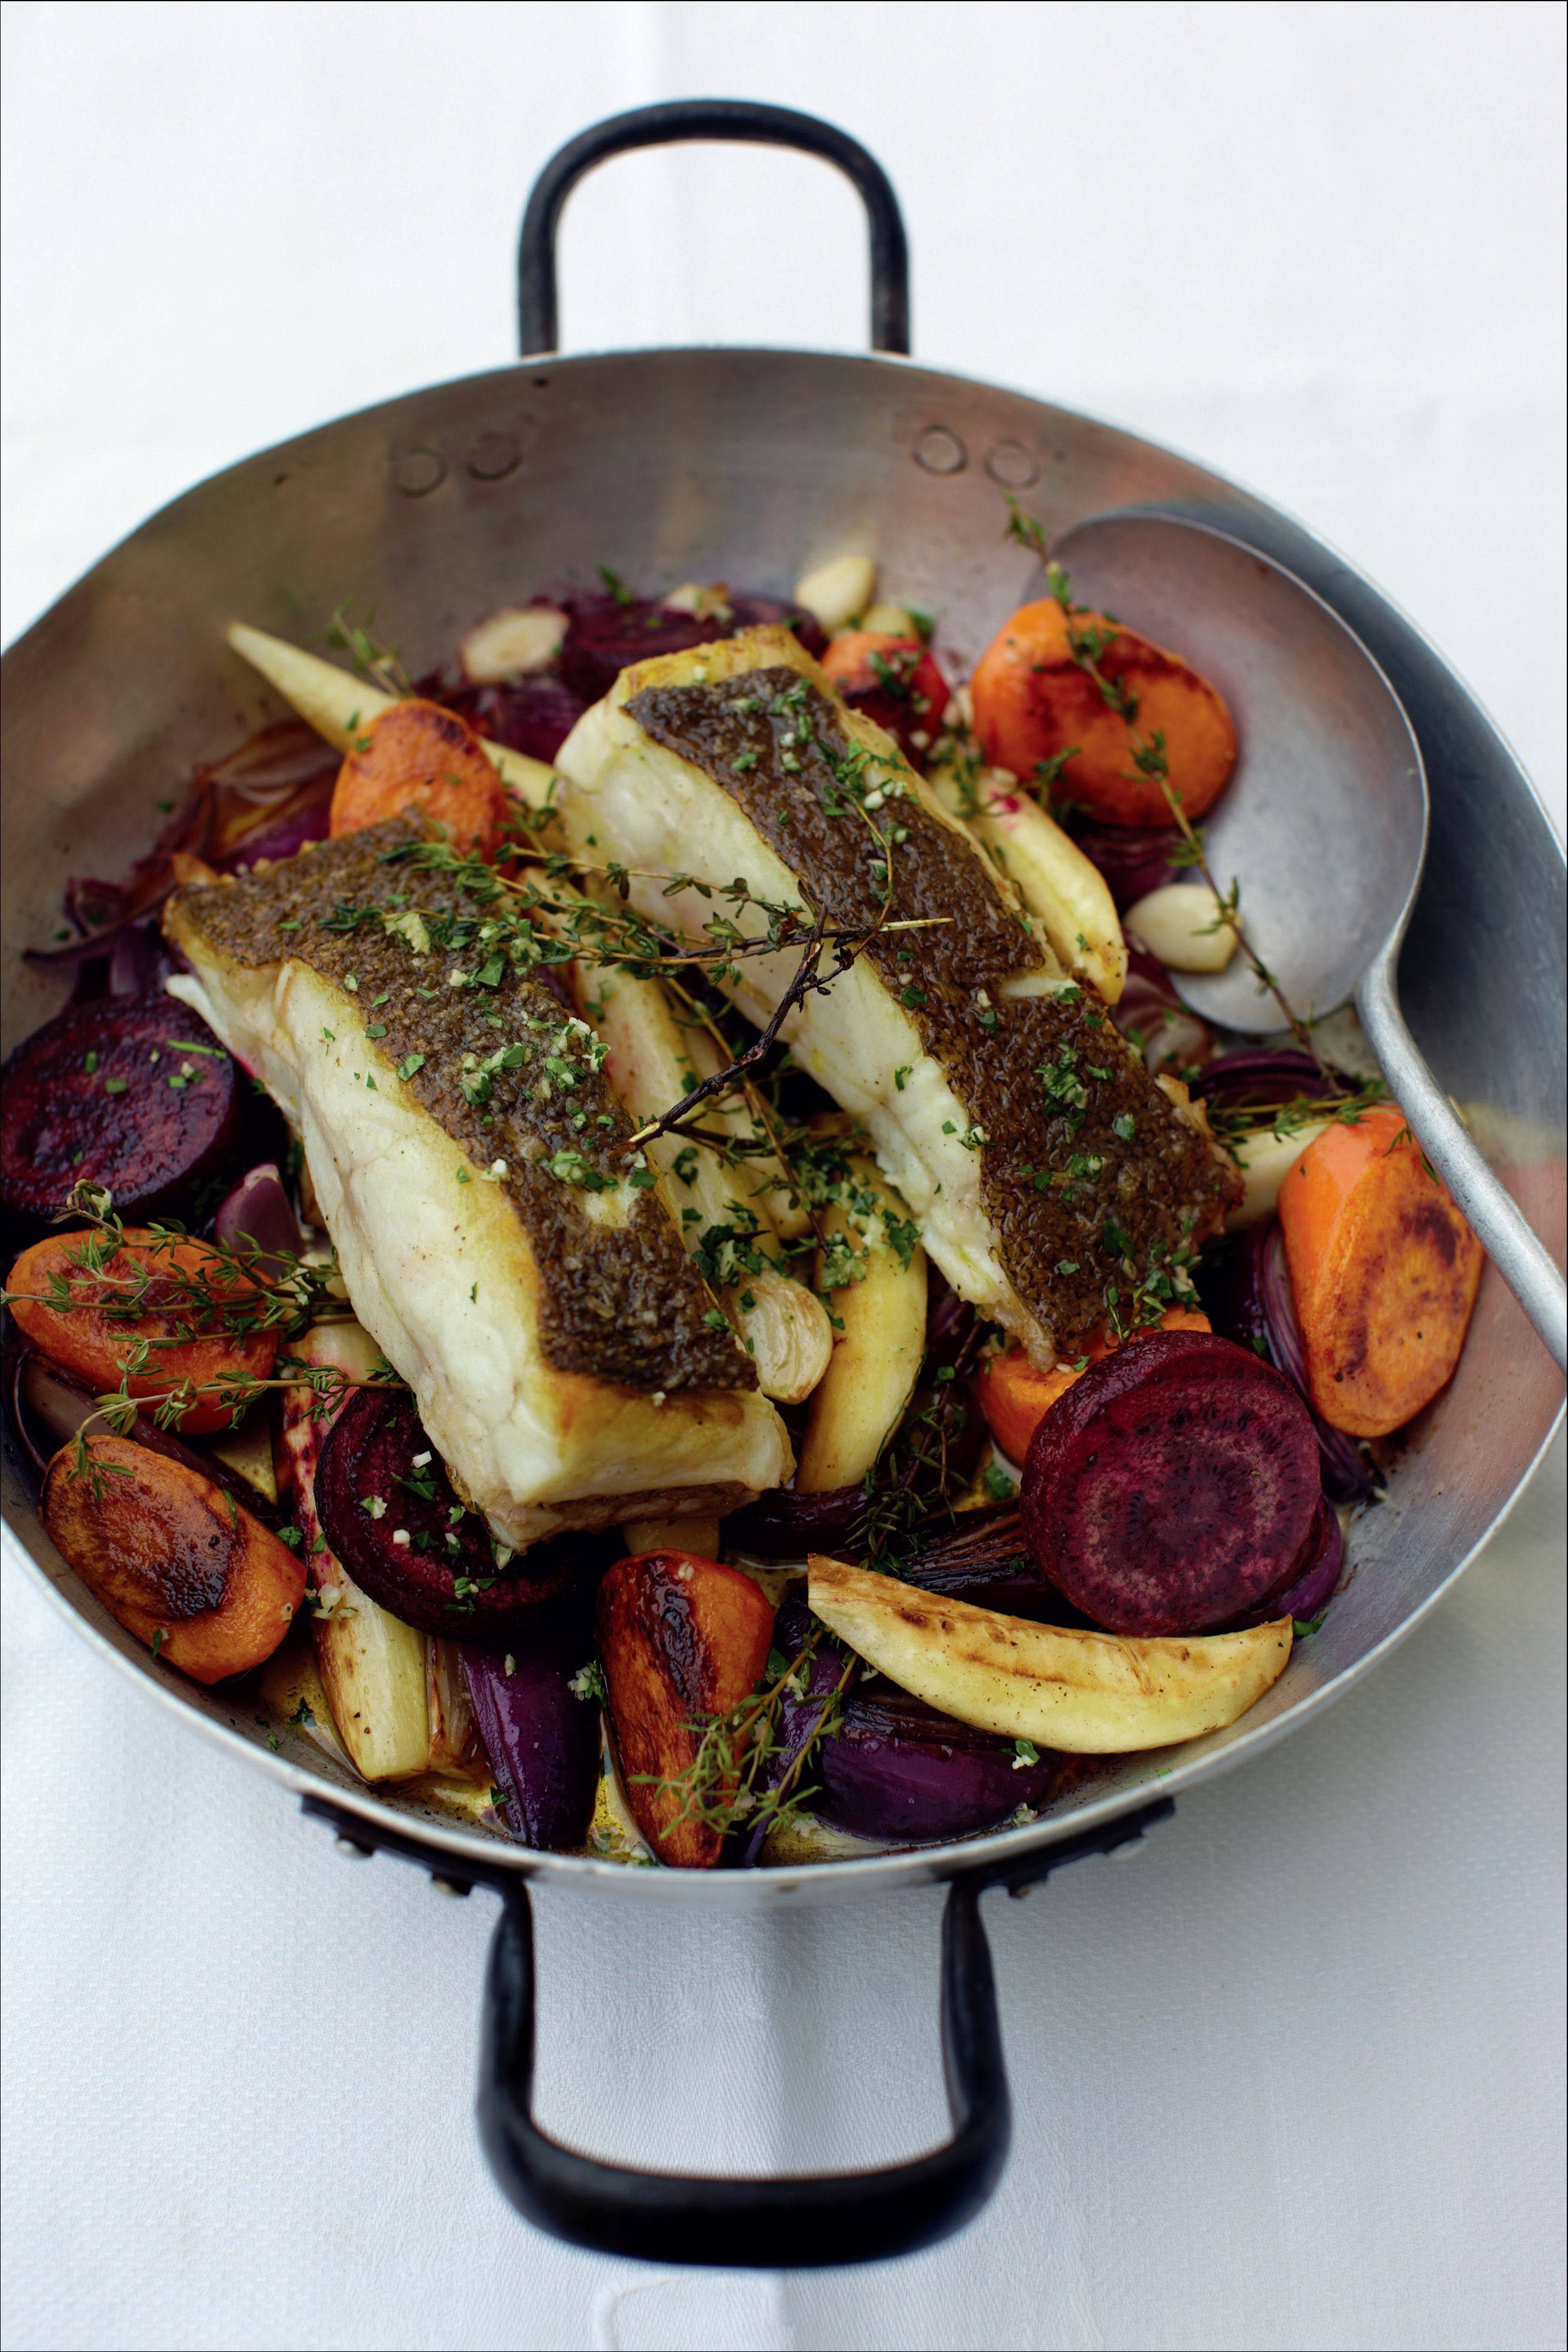 Brill with roasted root vegetables and red wine sauce